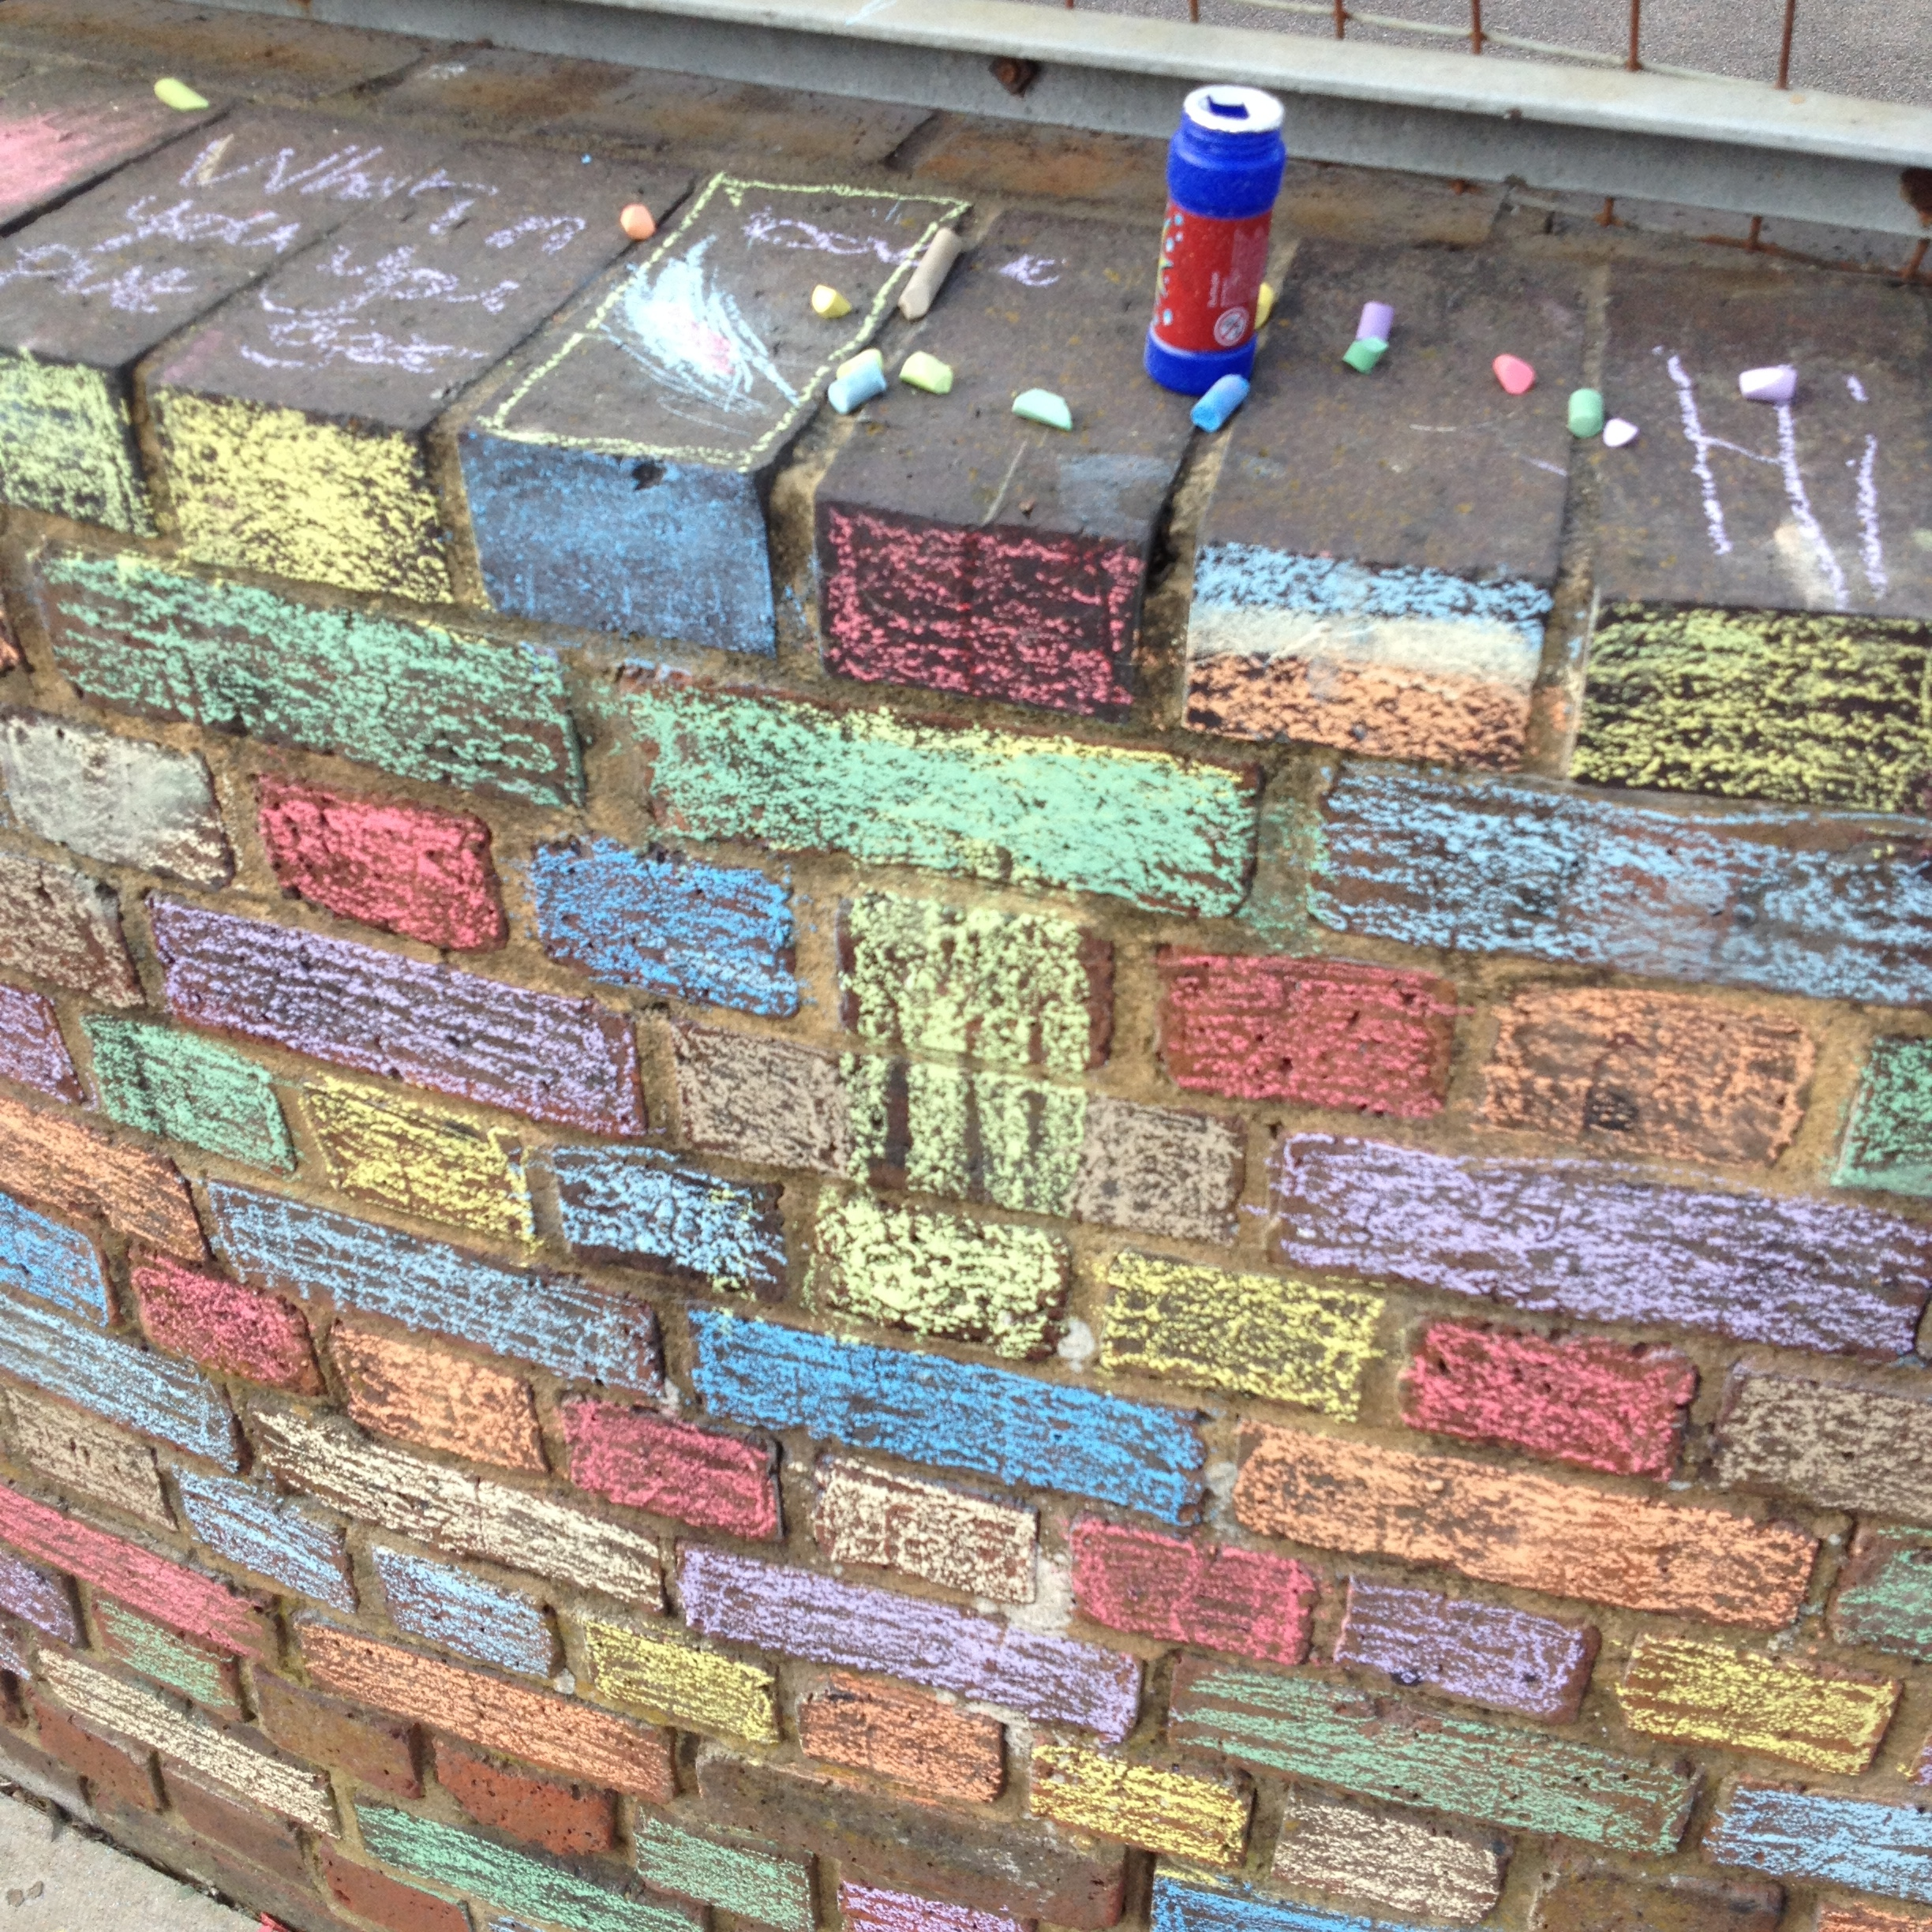 chalking the football cage wall to brighten up the neighbourhood